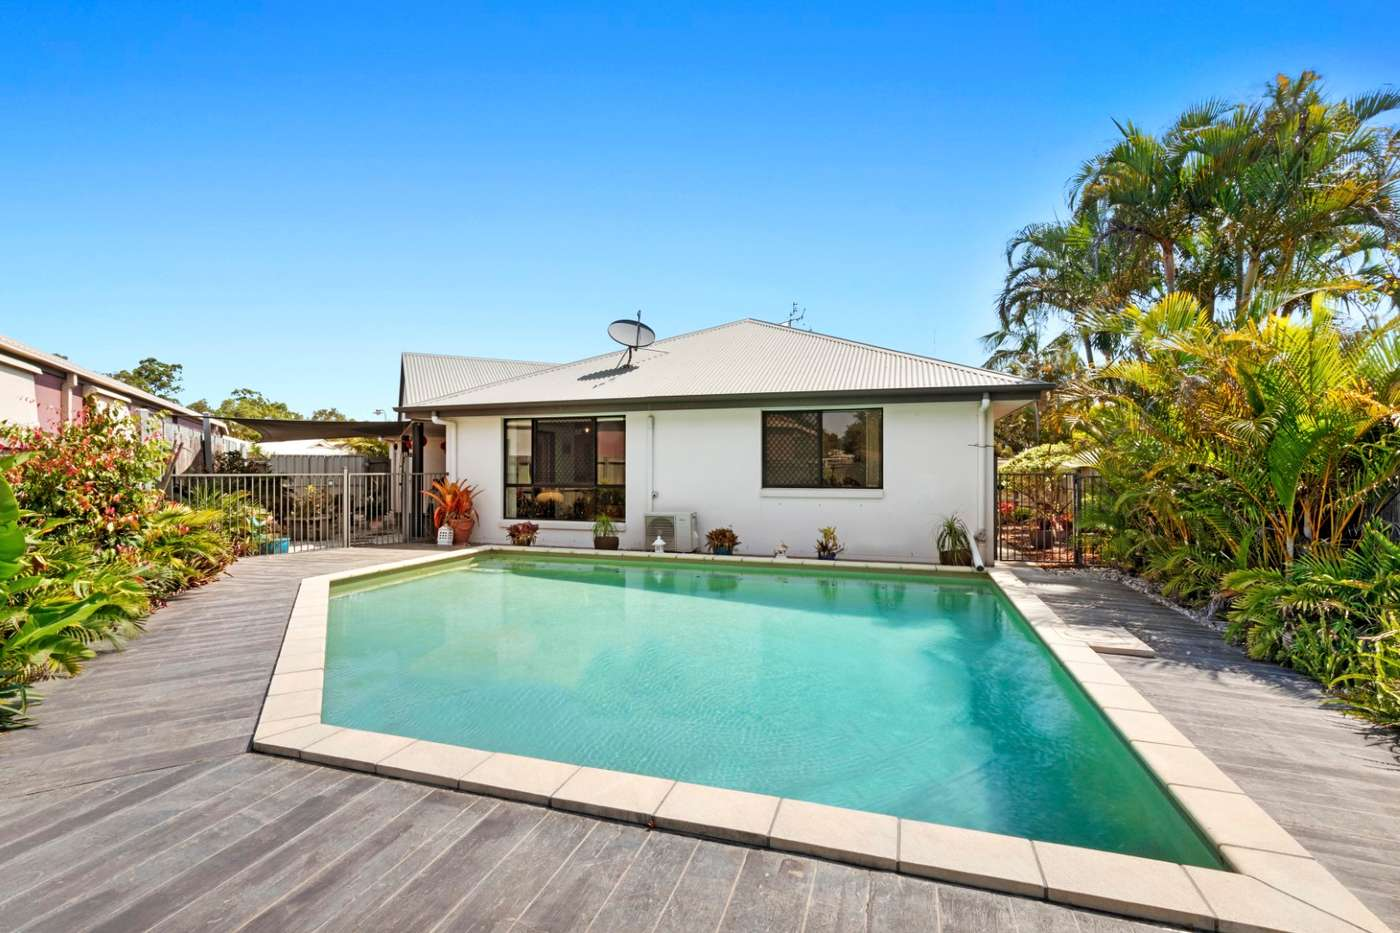 Main view of Homely house listing, 19 Fernleaf Court, Currimundi, QLD 4551